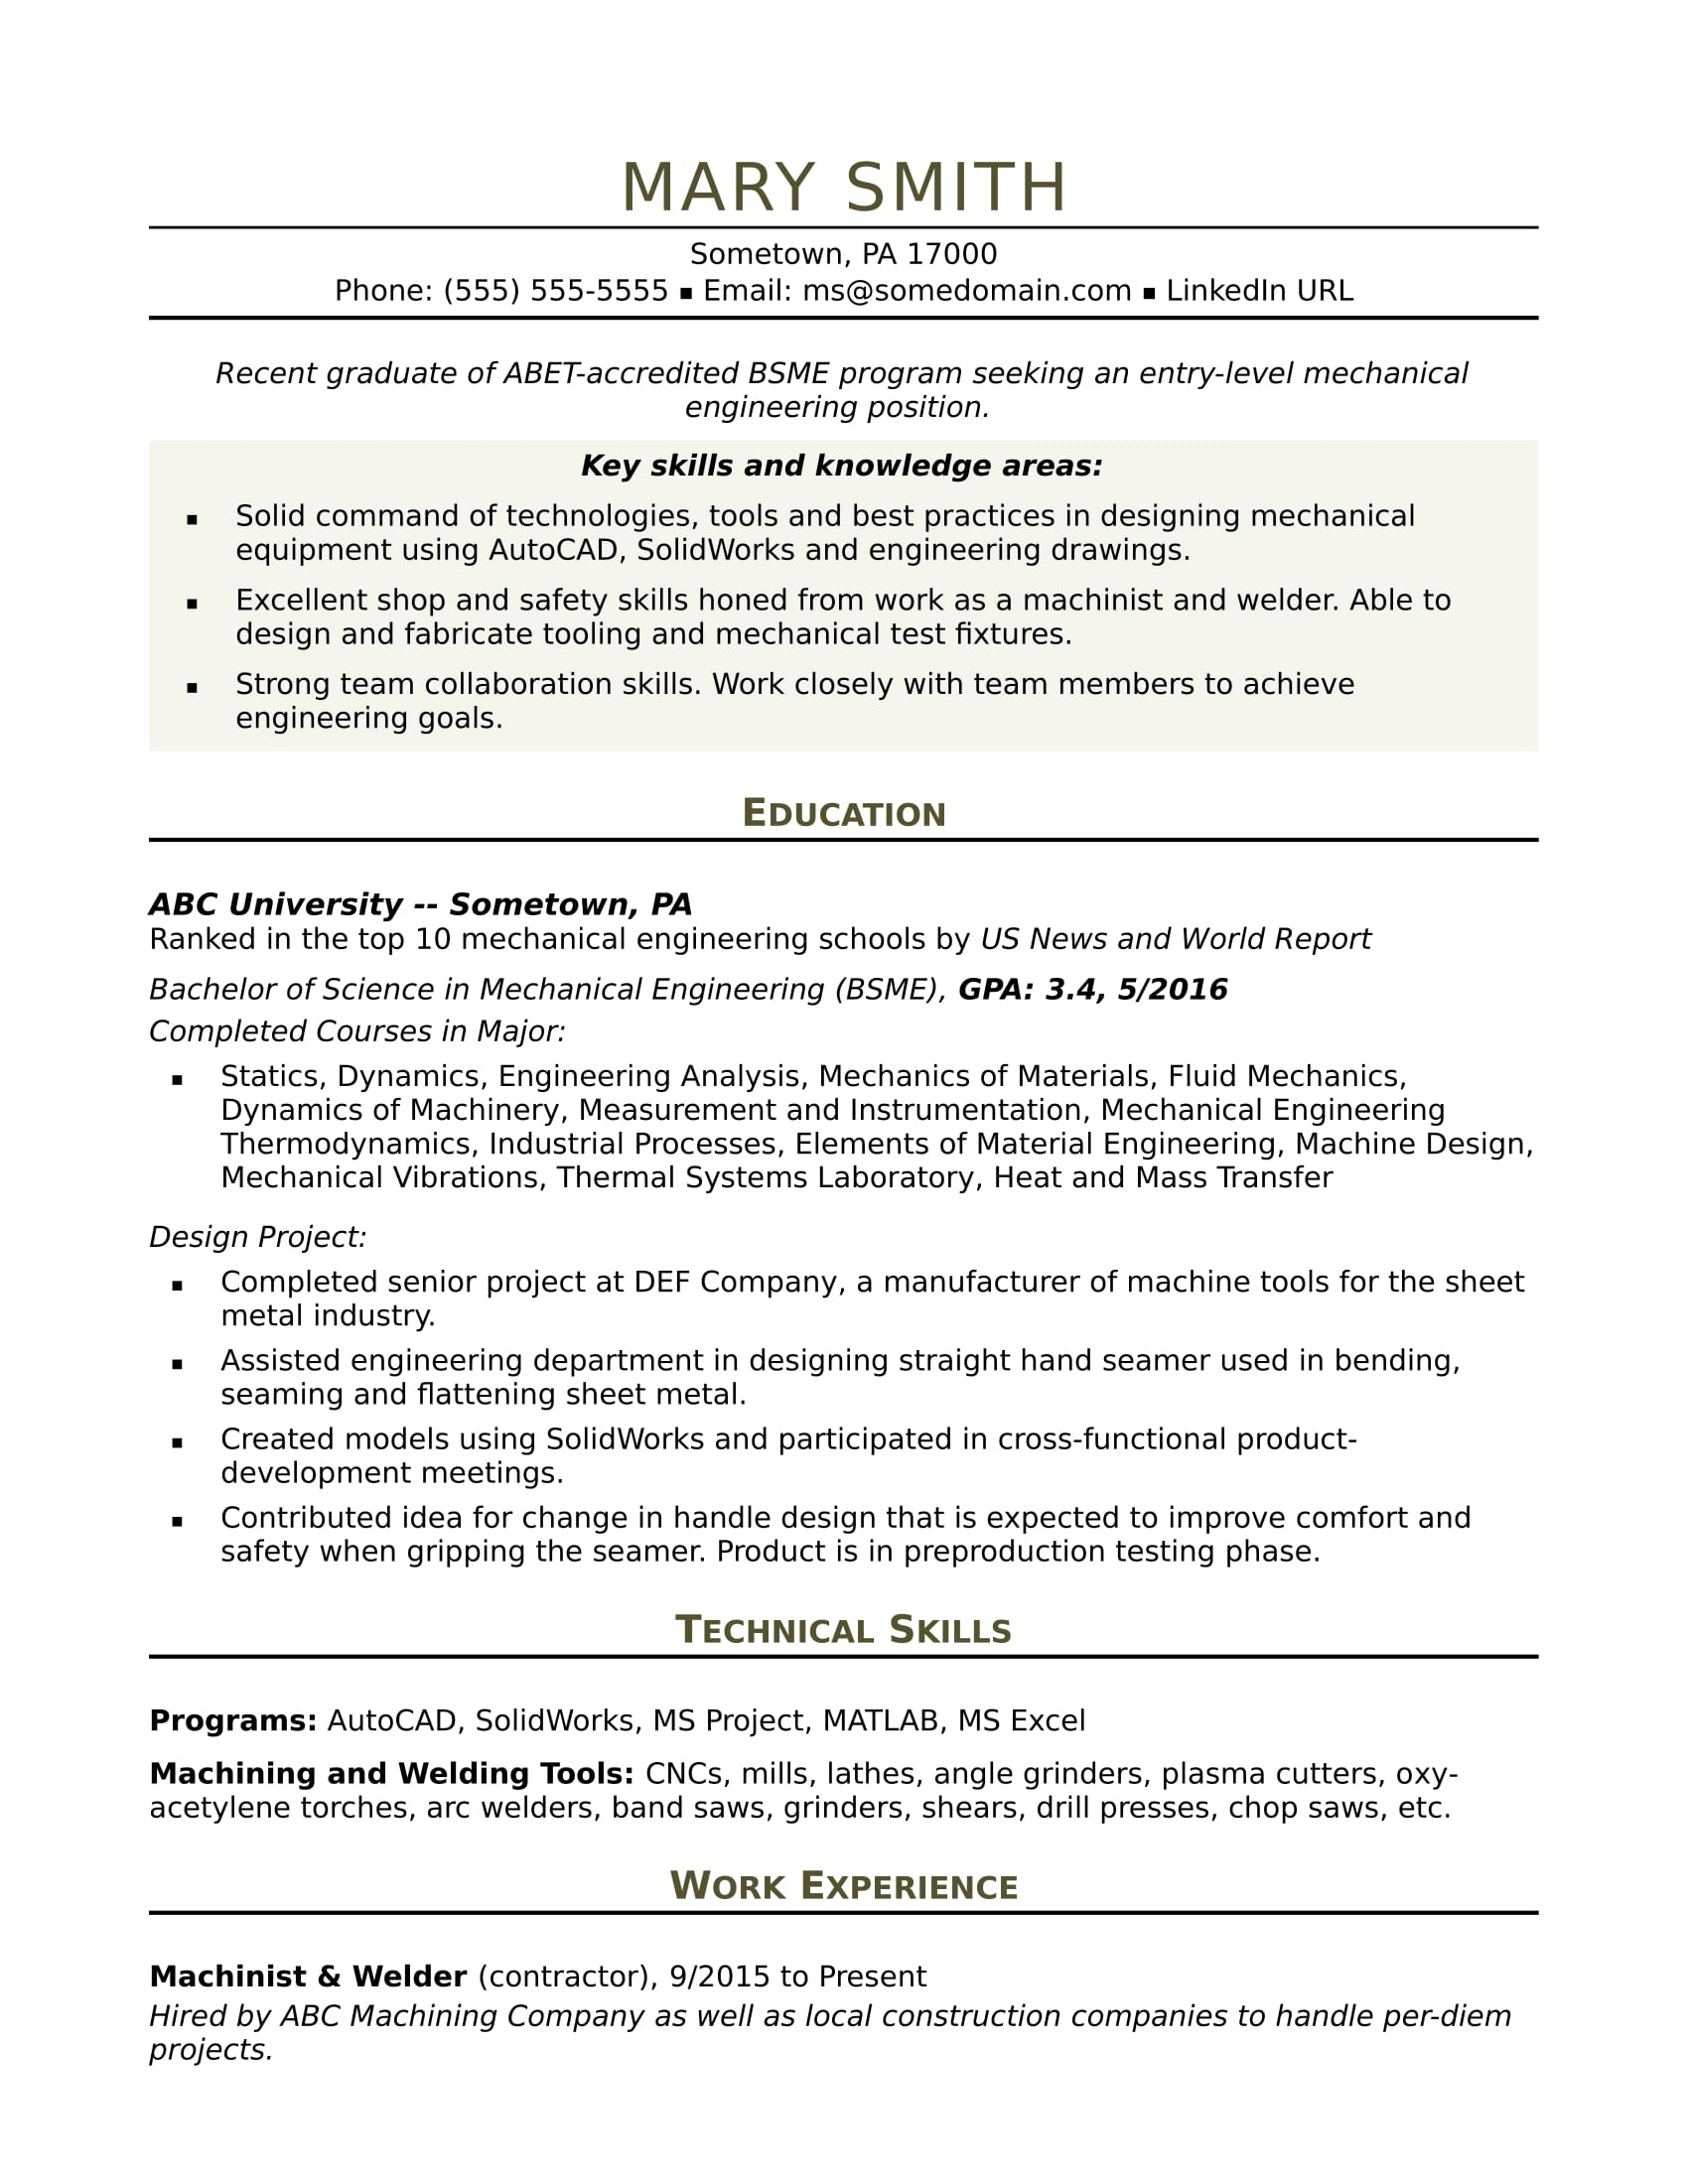 sample resume for an entry level mechanical engineer monster technical template action Resume Technical Resume Template